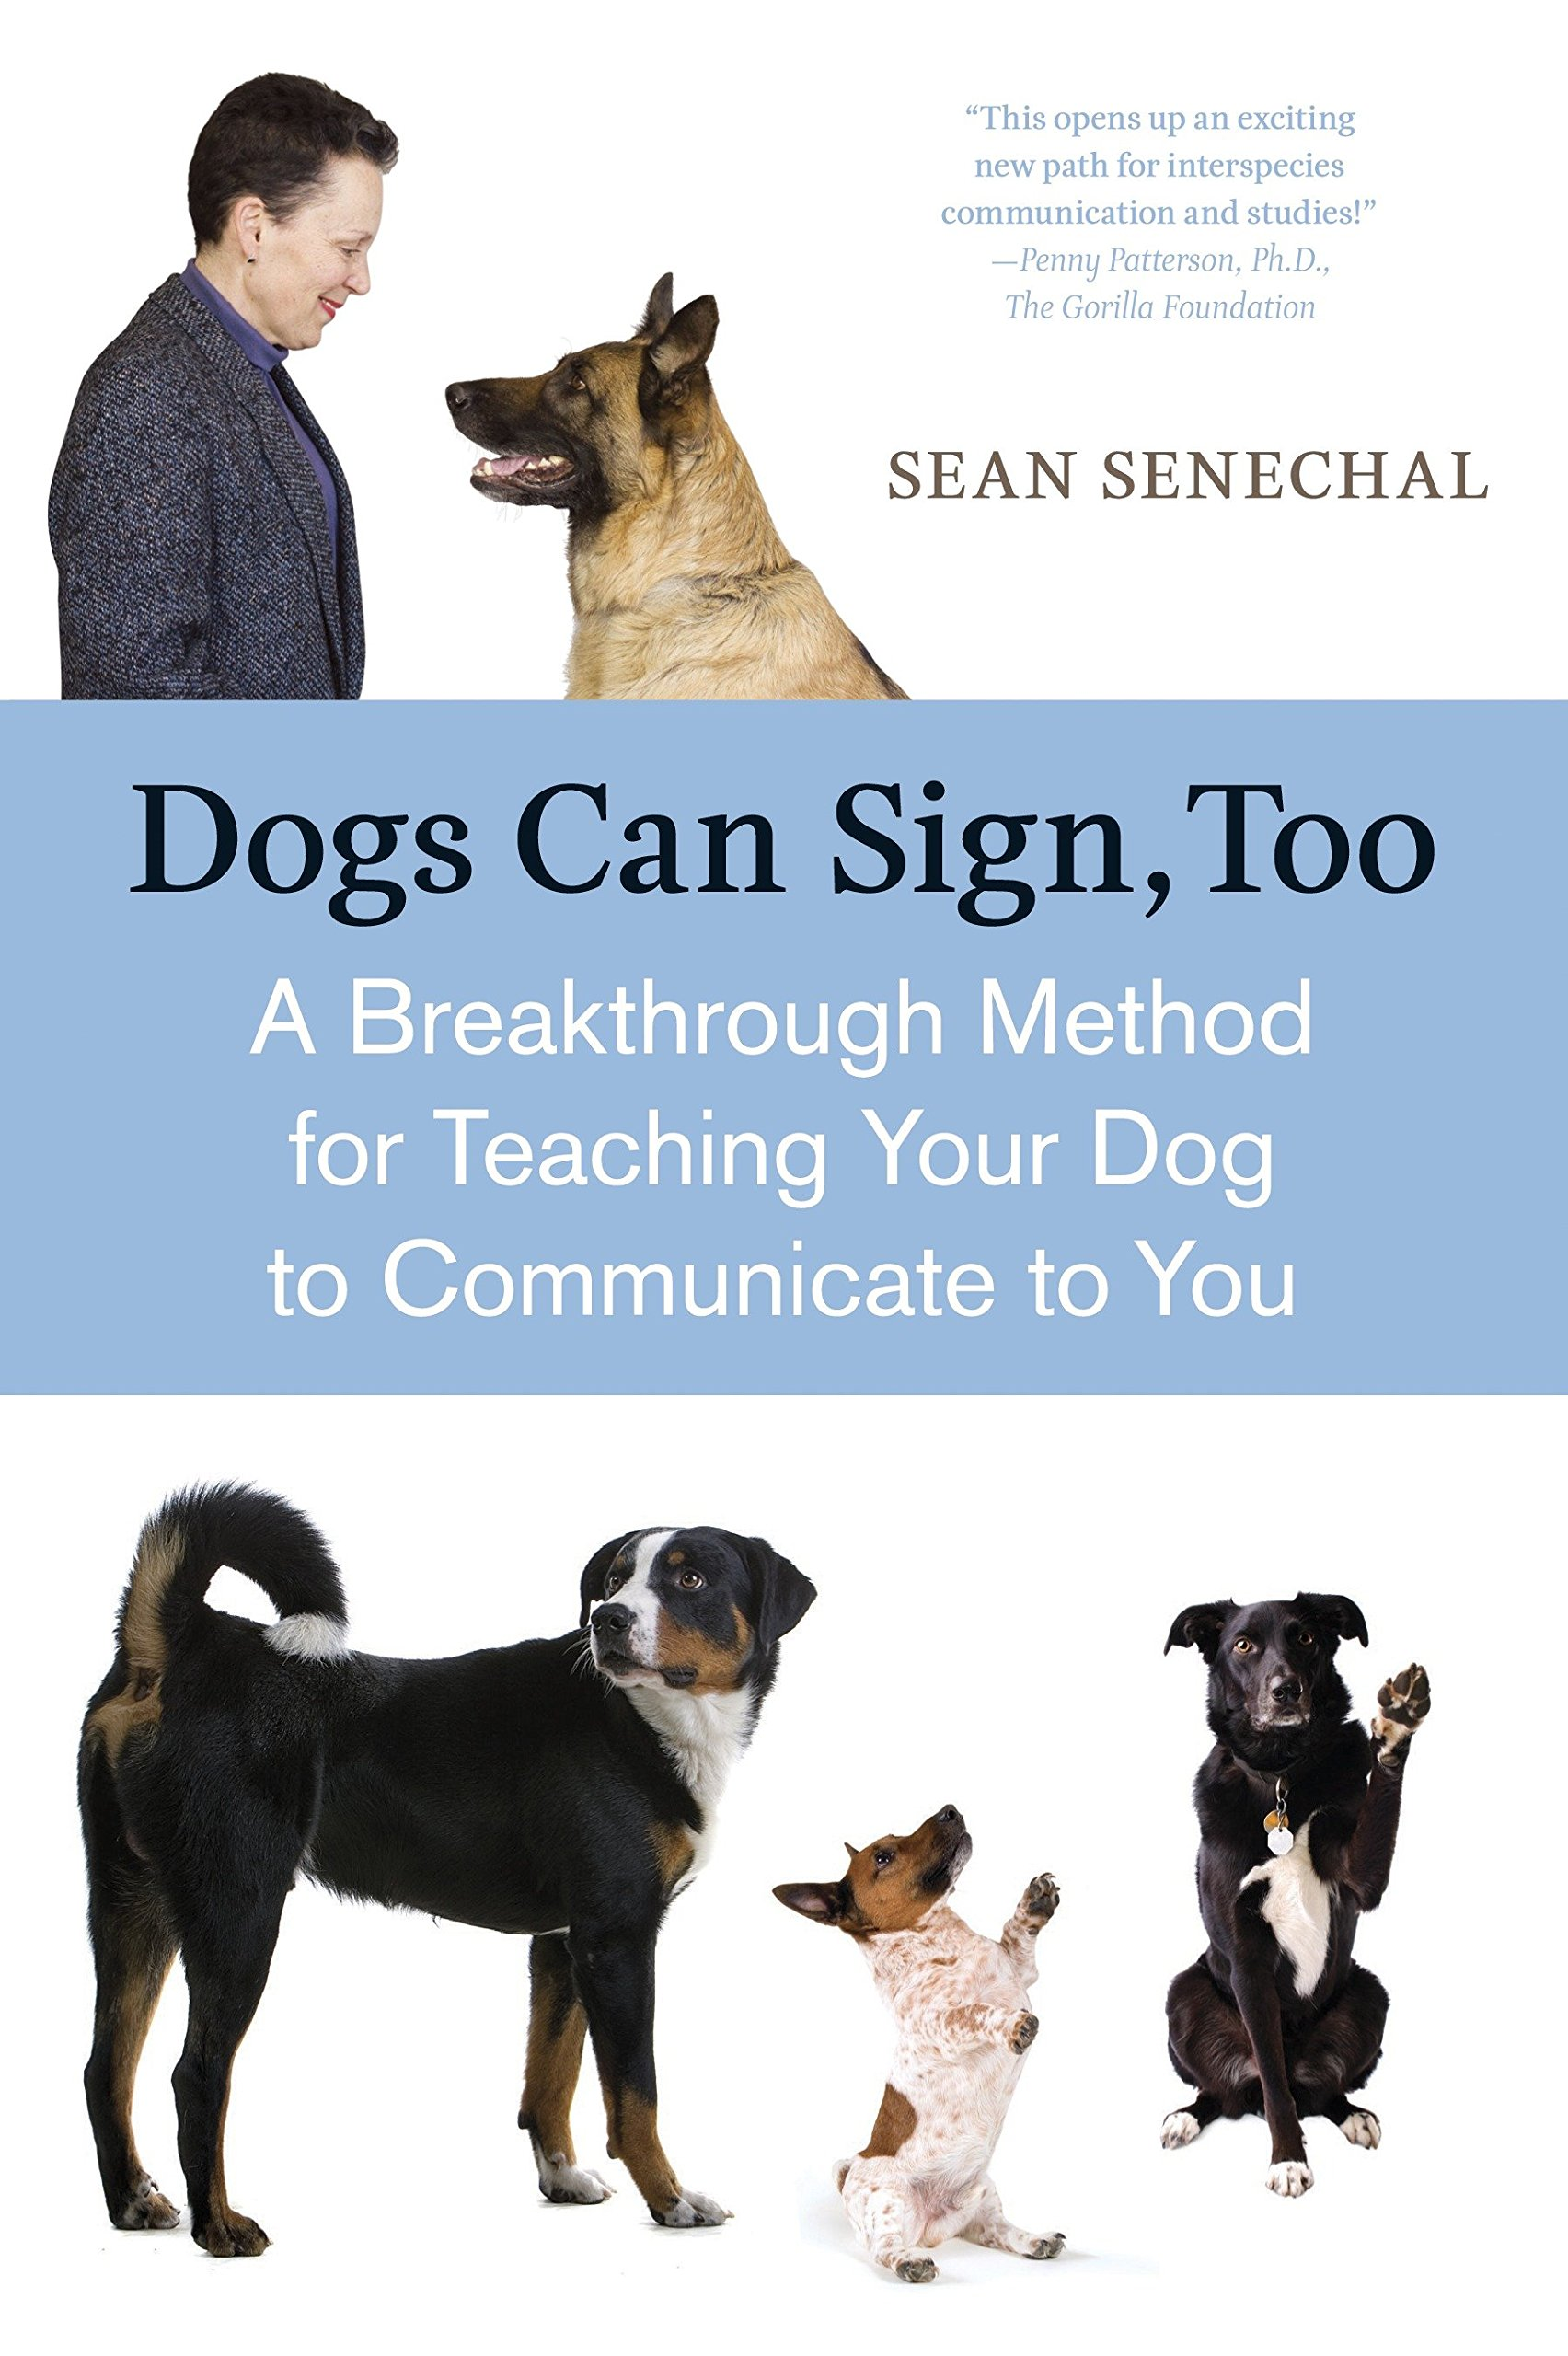 Dogs Can Sign, Too: A Breakthrough Method for Teaching Your Dog to Communicate by Senechal, Sean